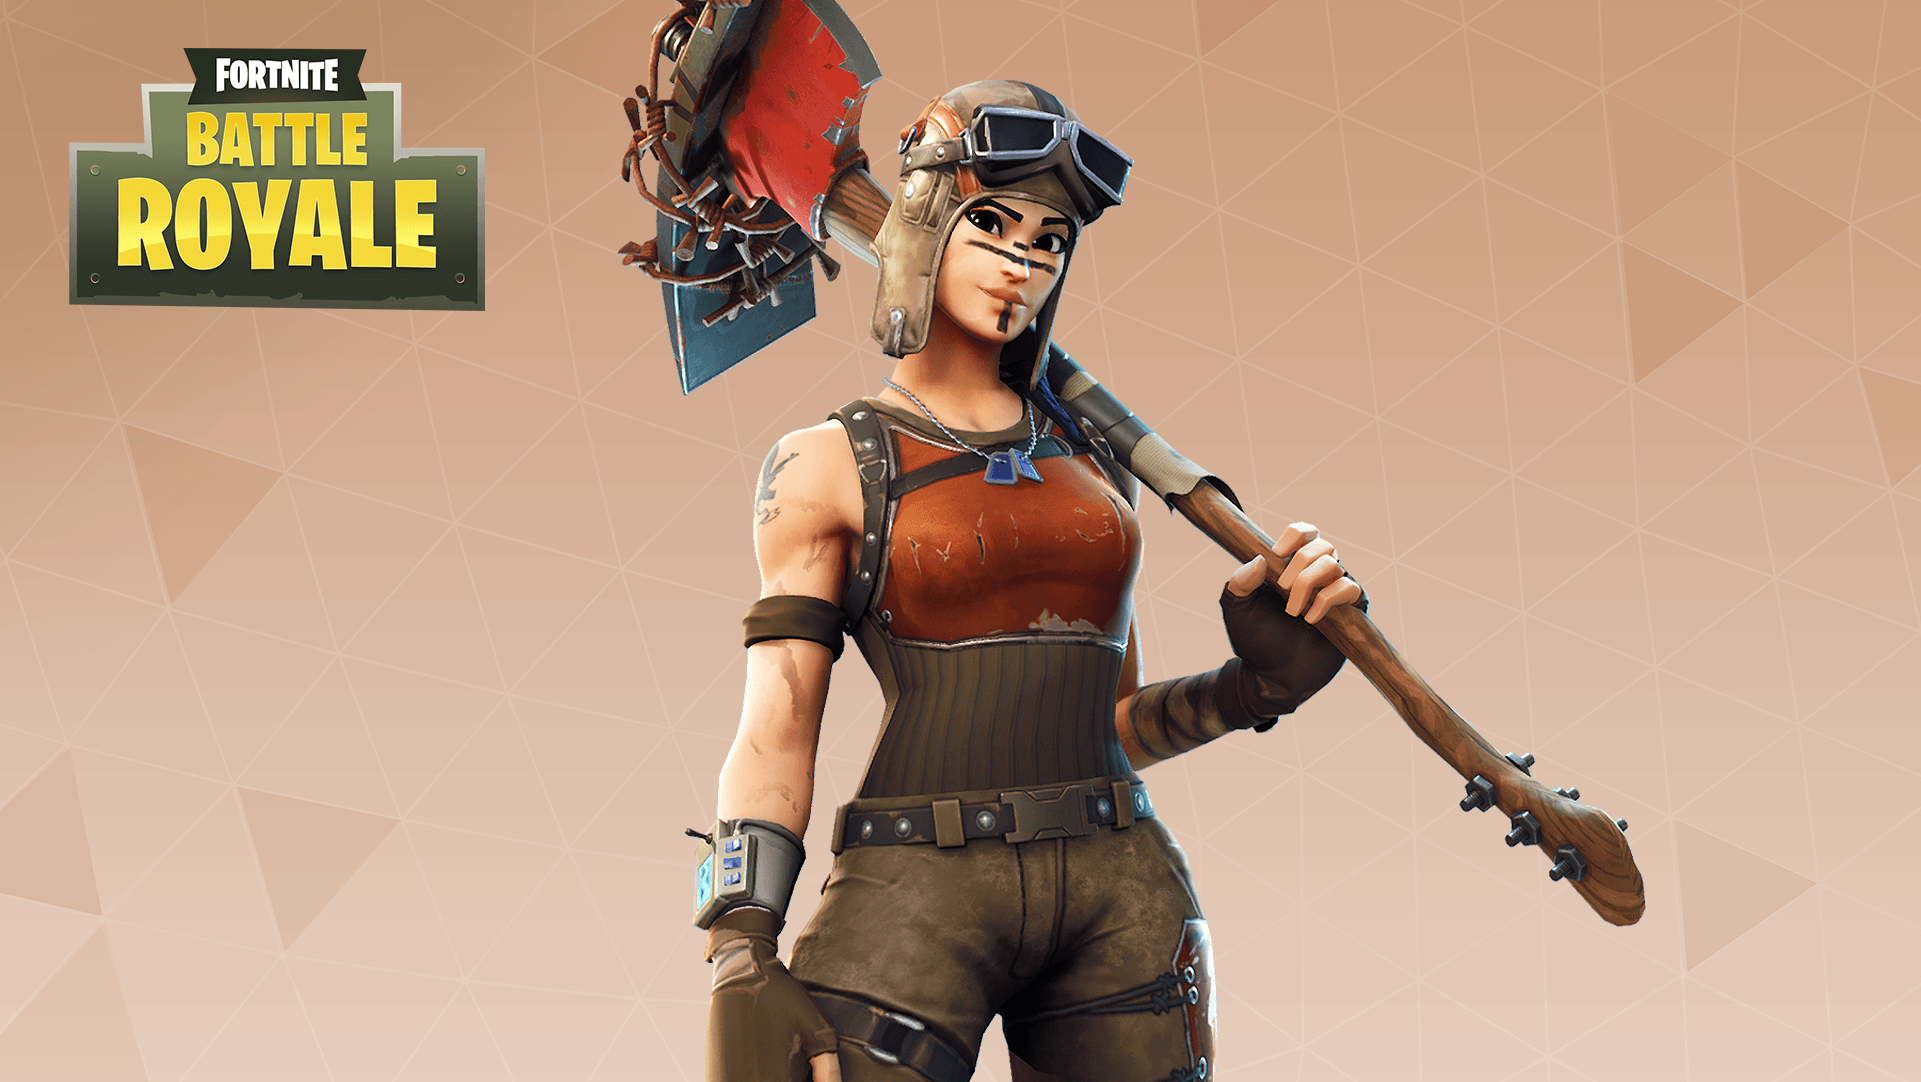 Renegade Raider Fortnite Wallpapers Wallpaper Cave